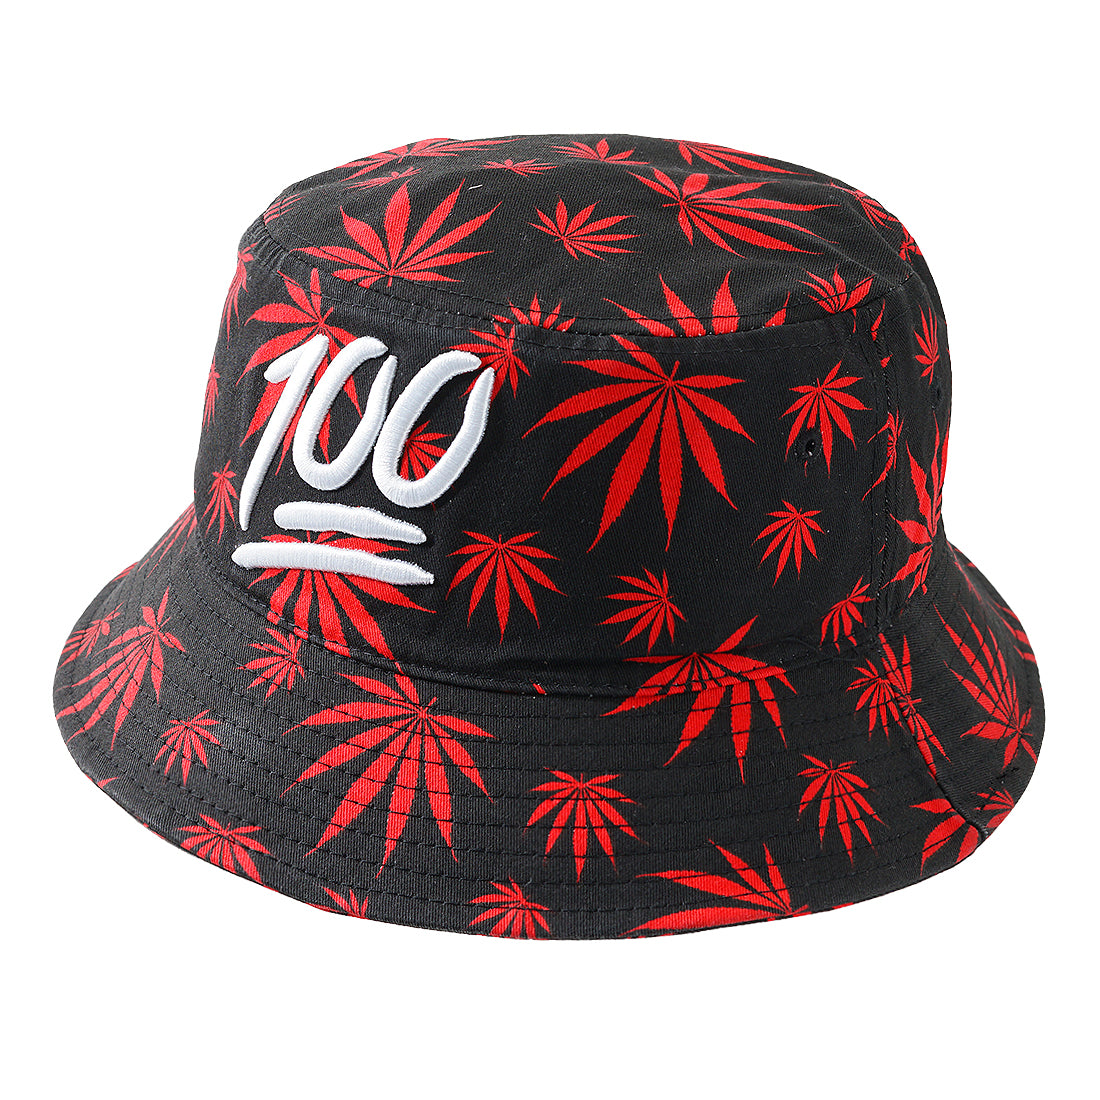 RED 100 Weed Pattern Bucket Hat - URBANCREWS